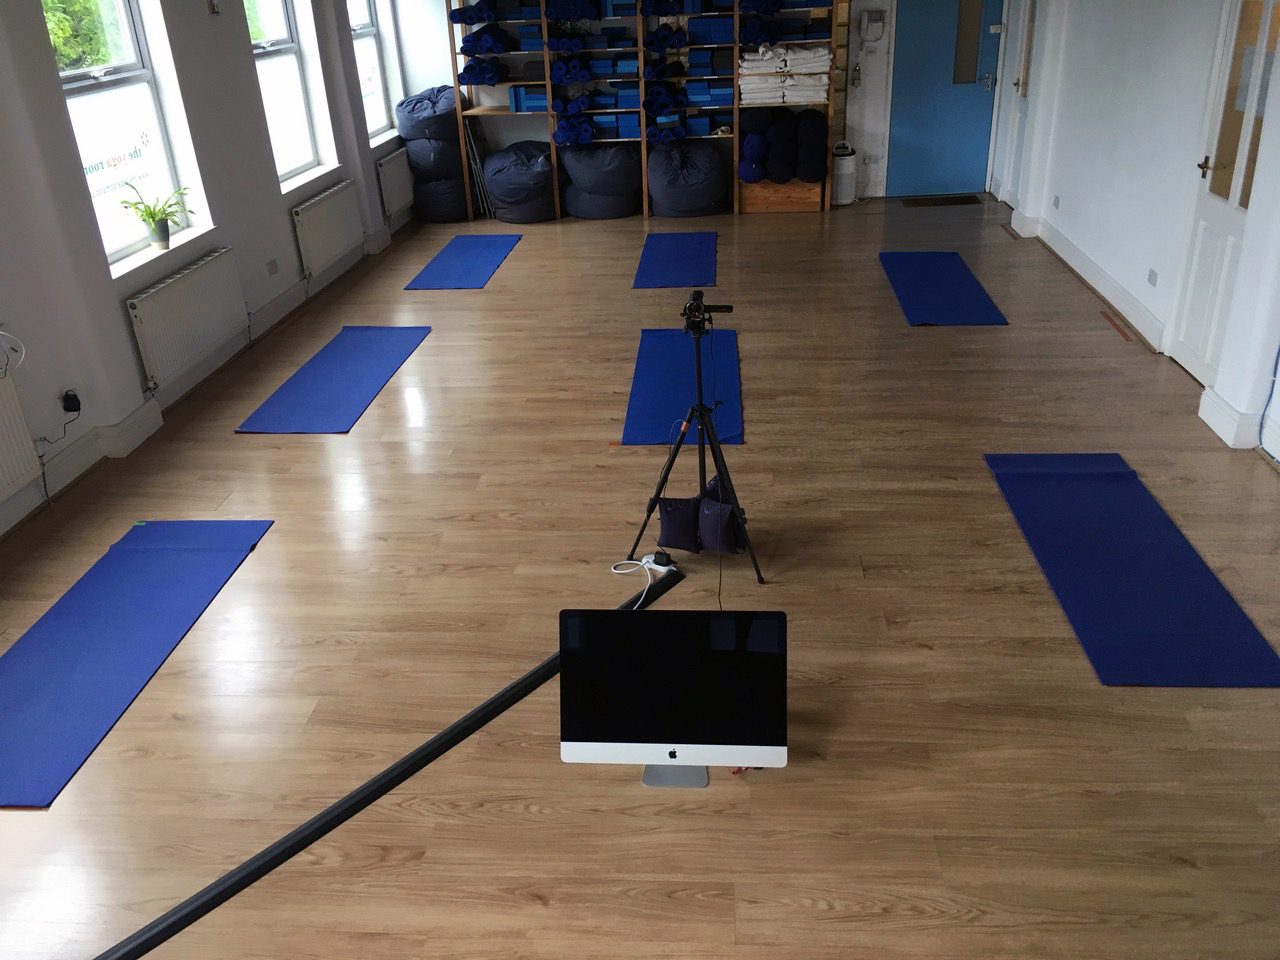 Social distancing in place at The Yoga Rooms